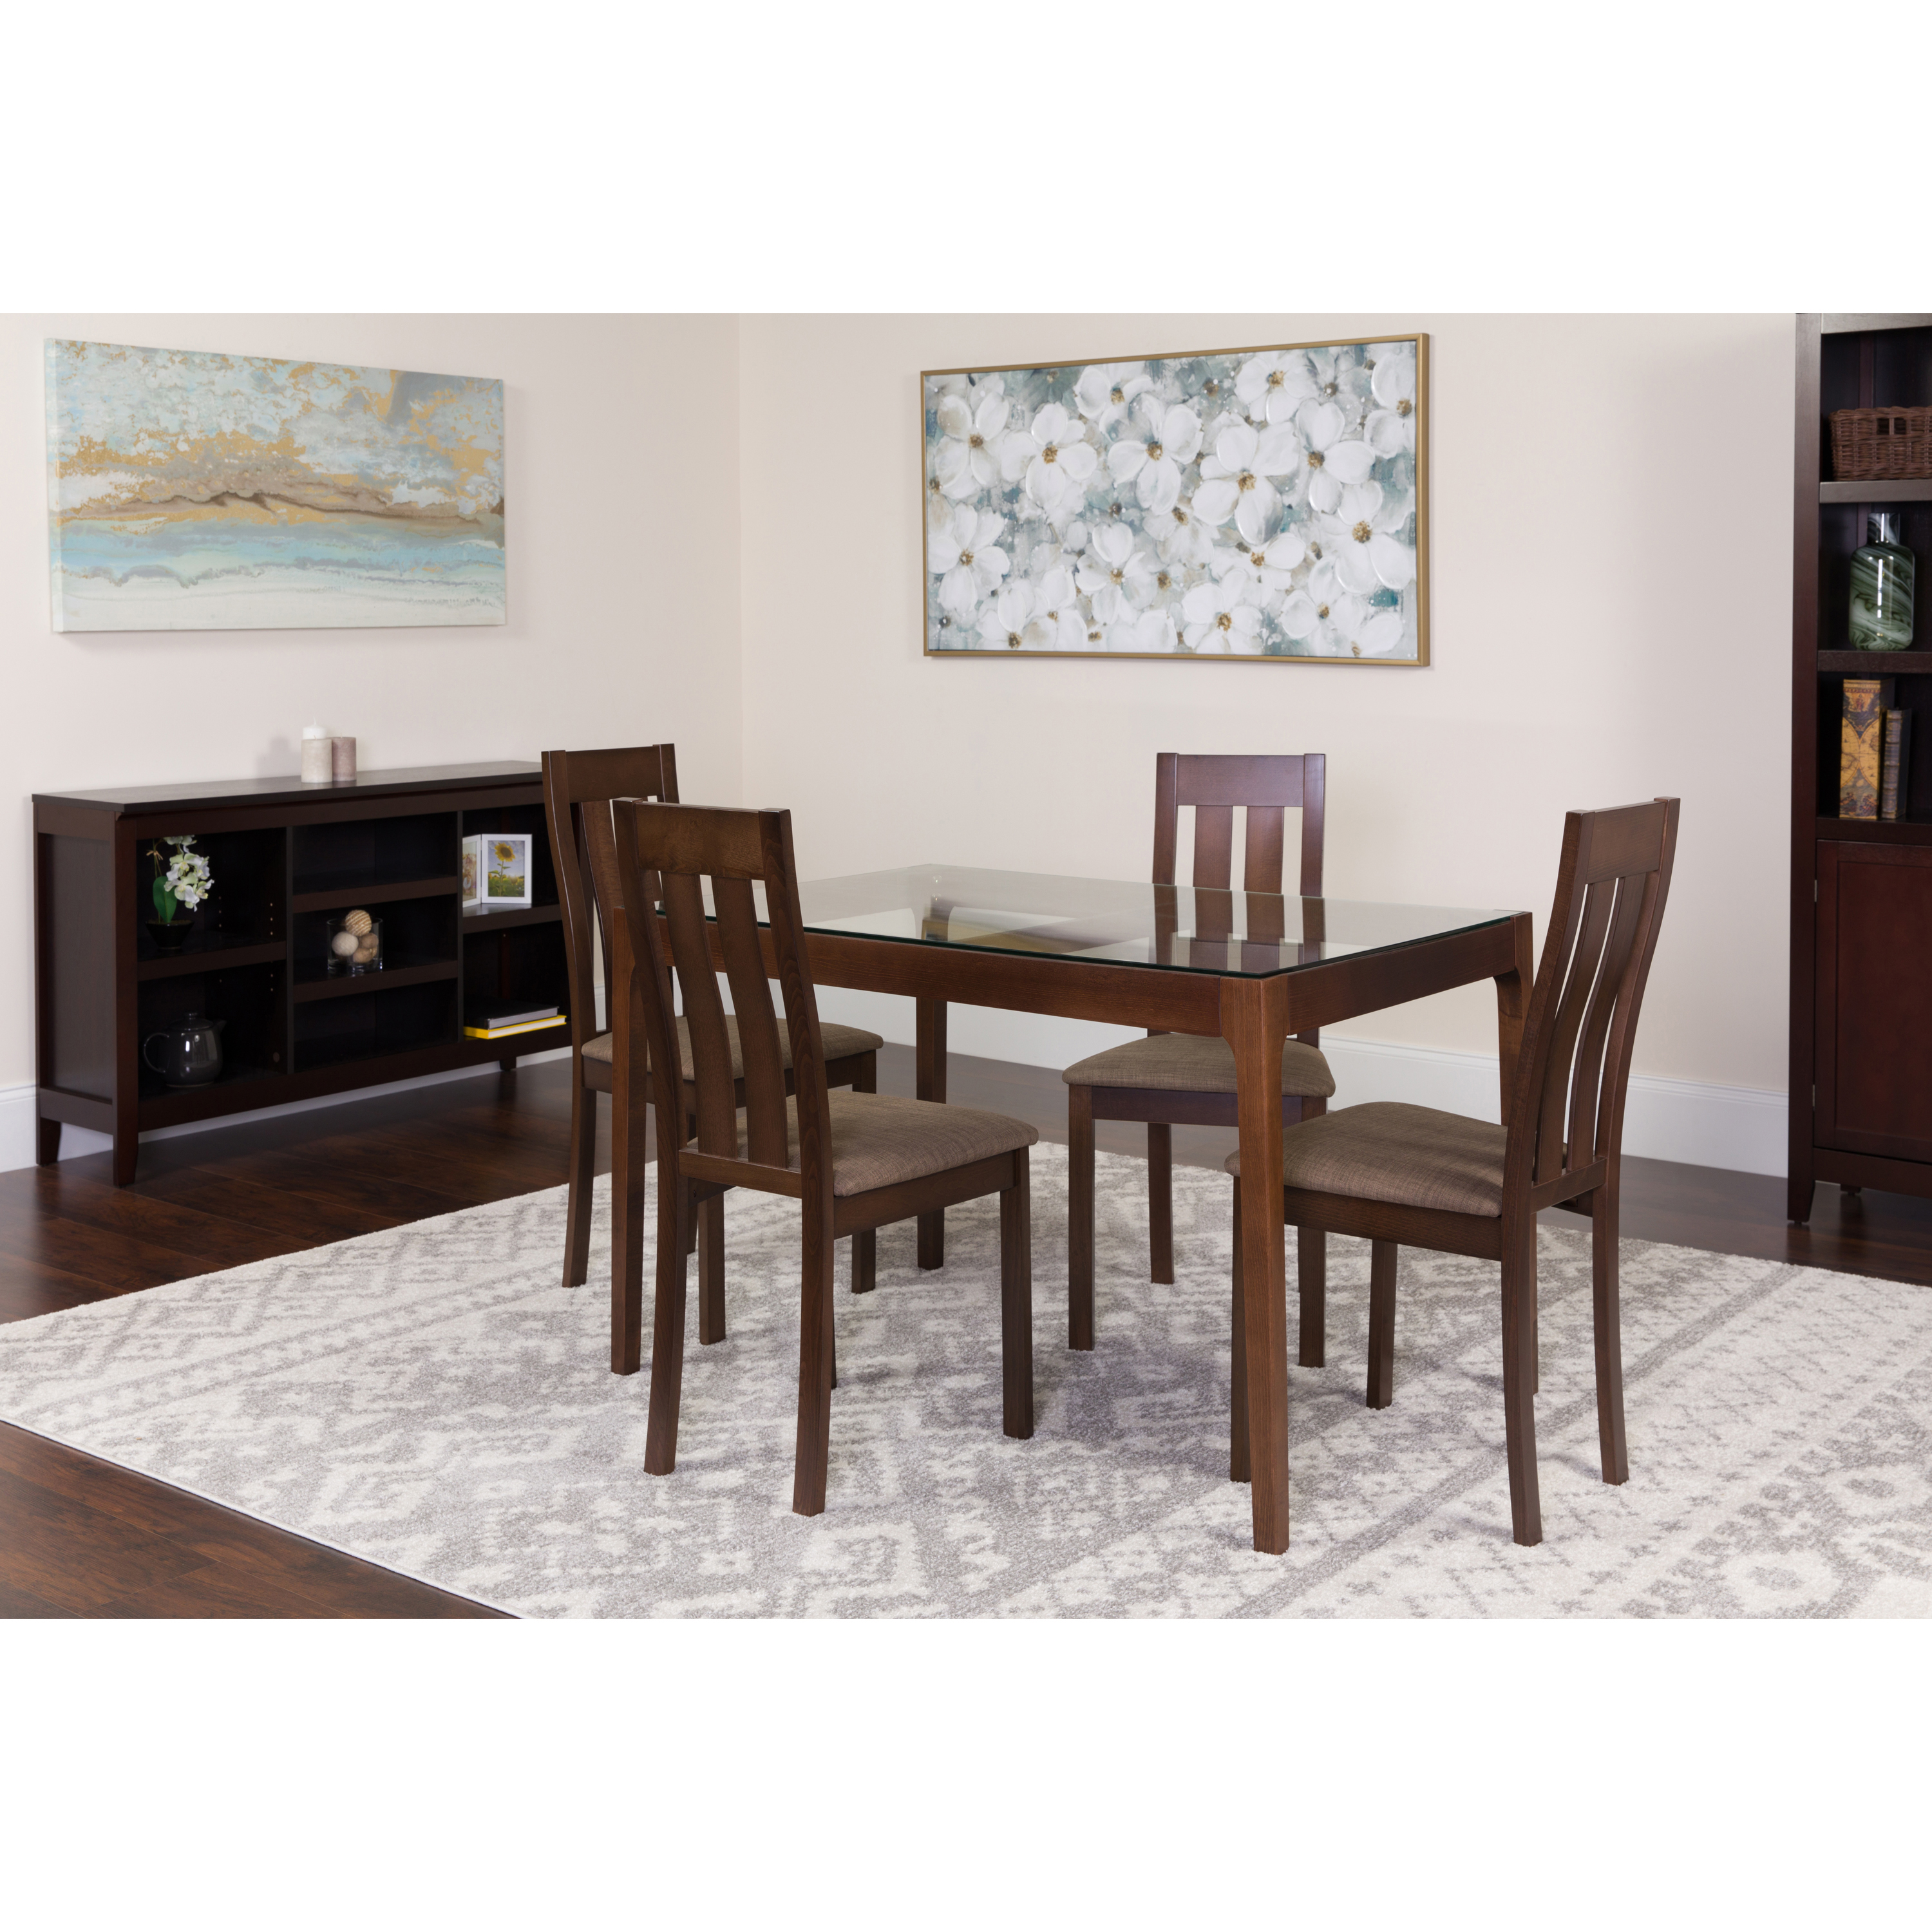 Standard Furniture Cosmo 5 Piece Round Coffee Table Set W: Flash Furniture Belvedere 5 Piece Espresso Wood Dining